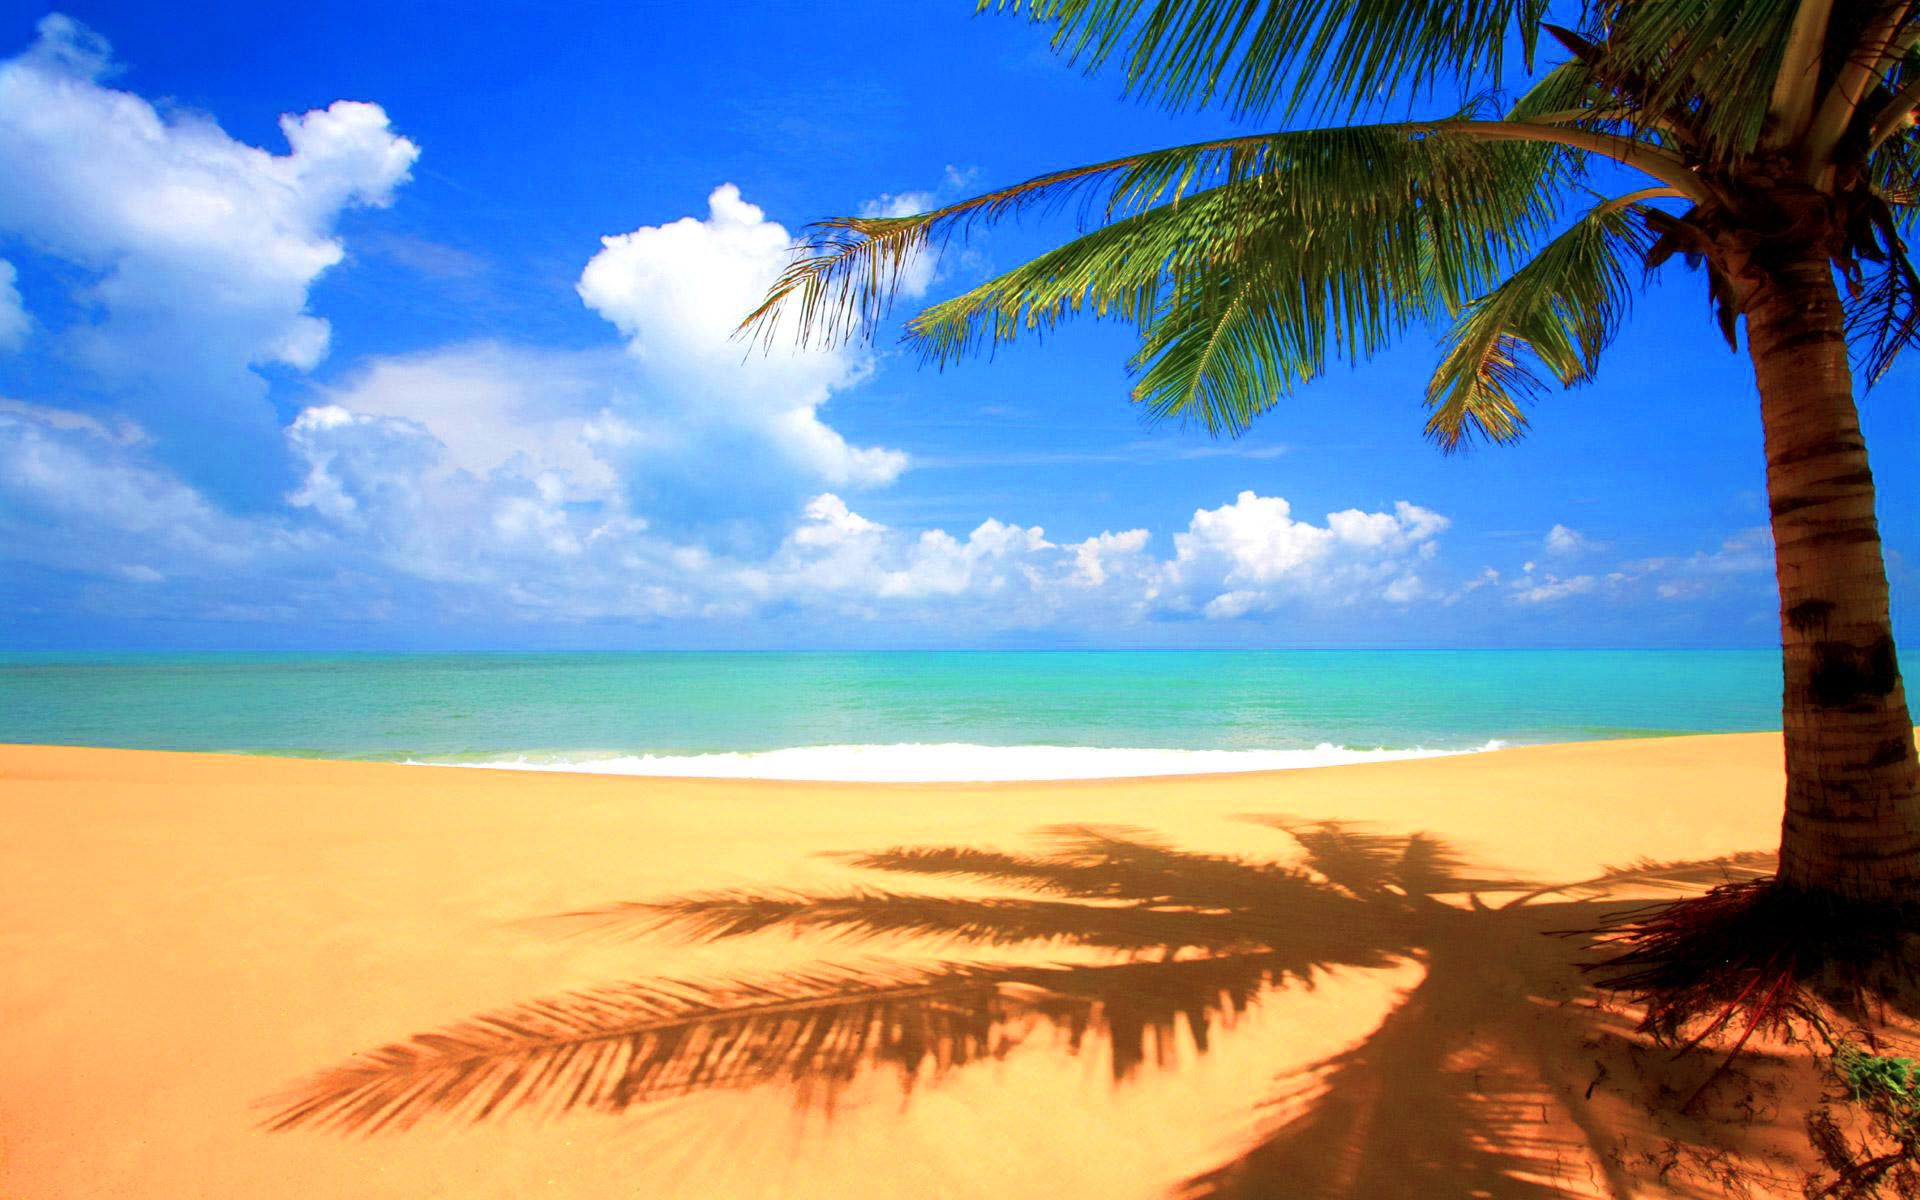 image for beautiful beach backgrounds high definition walf1003